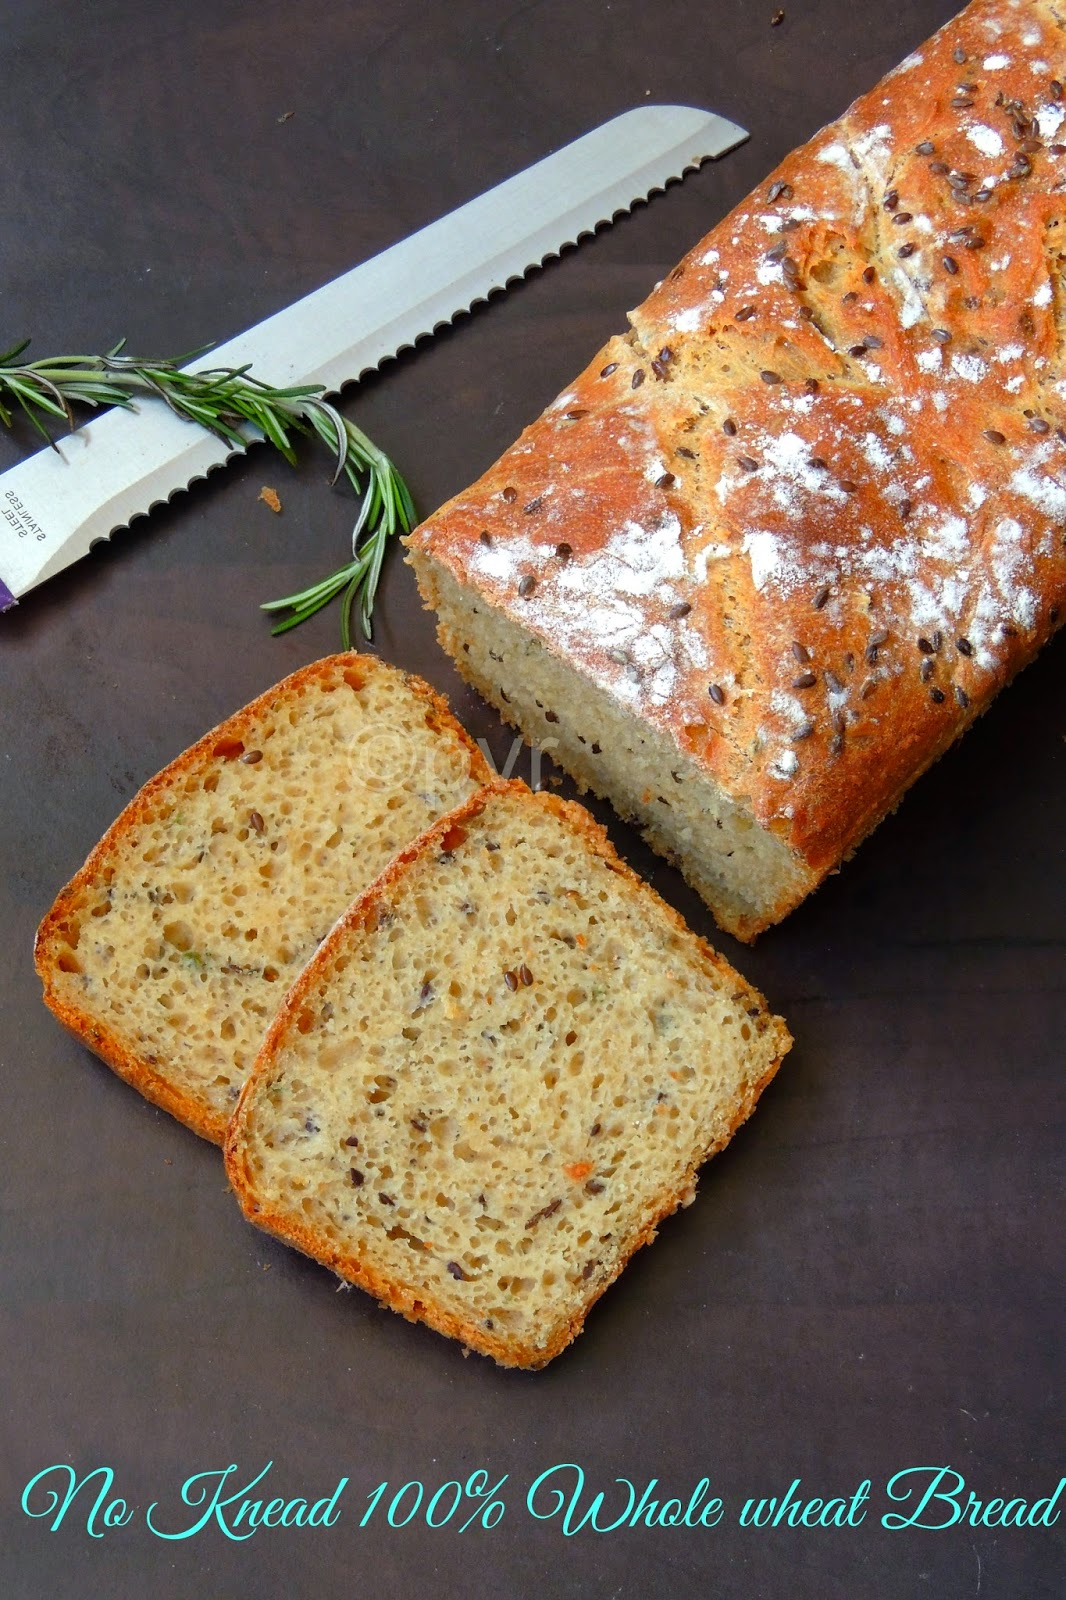 No knead vegan rosemary and flaxseed bread, Herb & Flaxseed loaded no knead whole wheat bread loaf, No knead whole wheat bread loaf